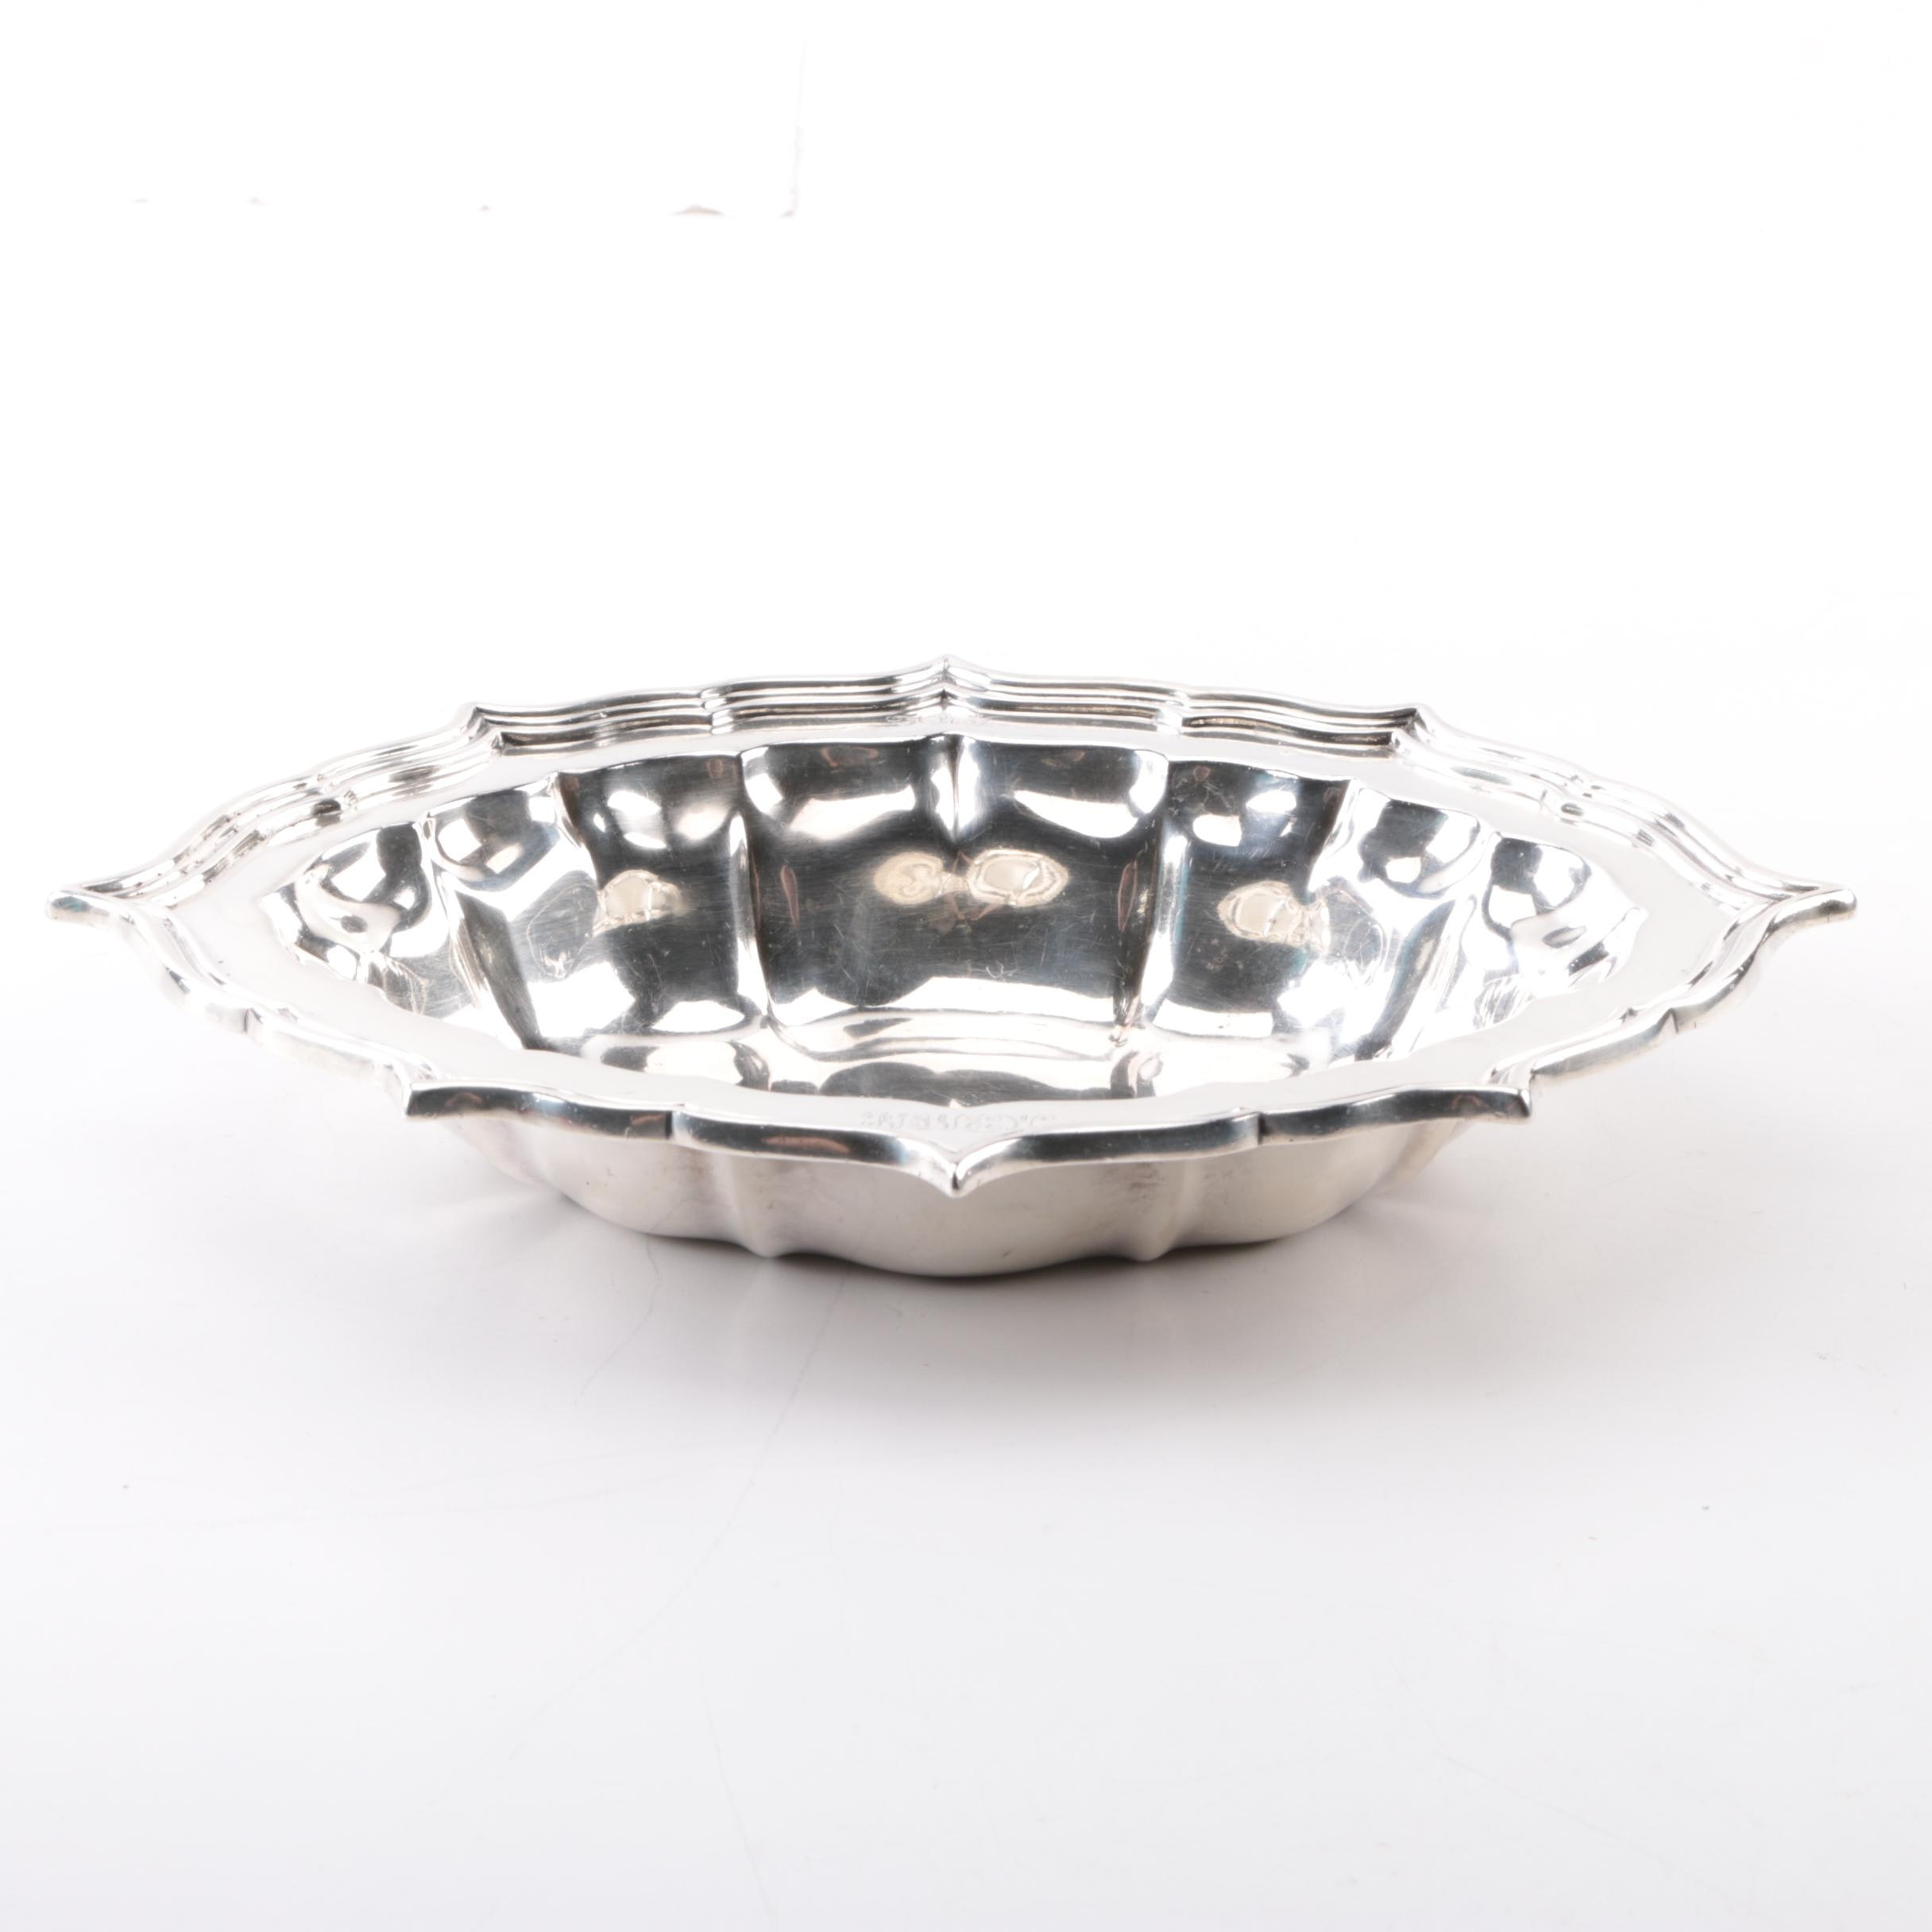 J.E. Caldwell & Co. Sterling Silver Vegetable Bowl